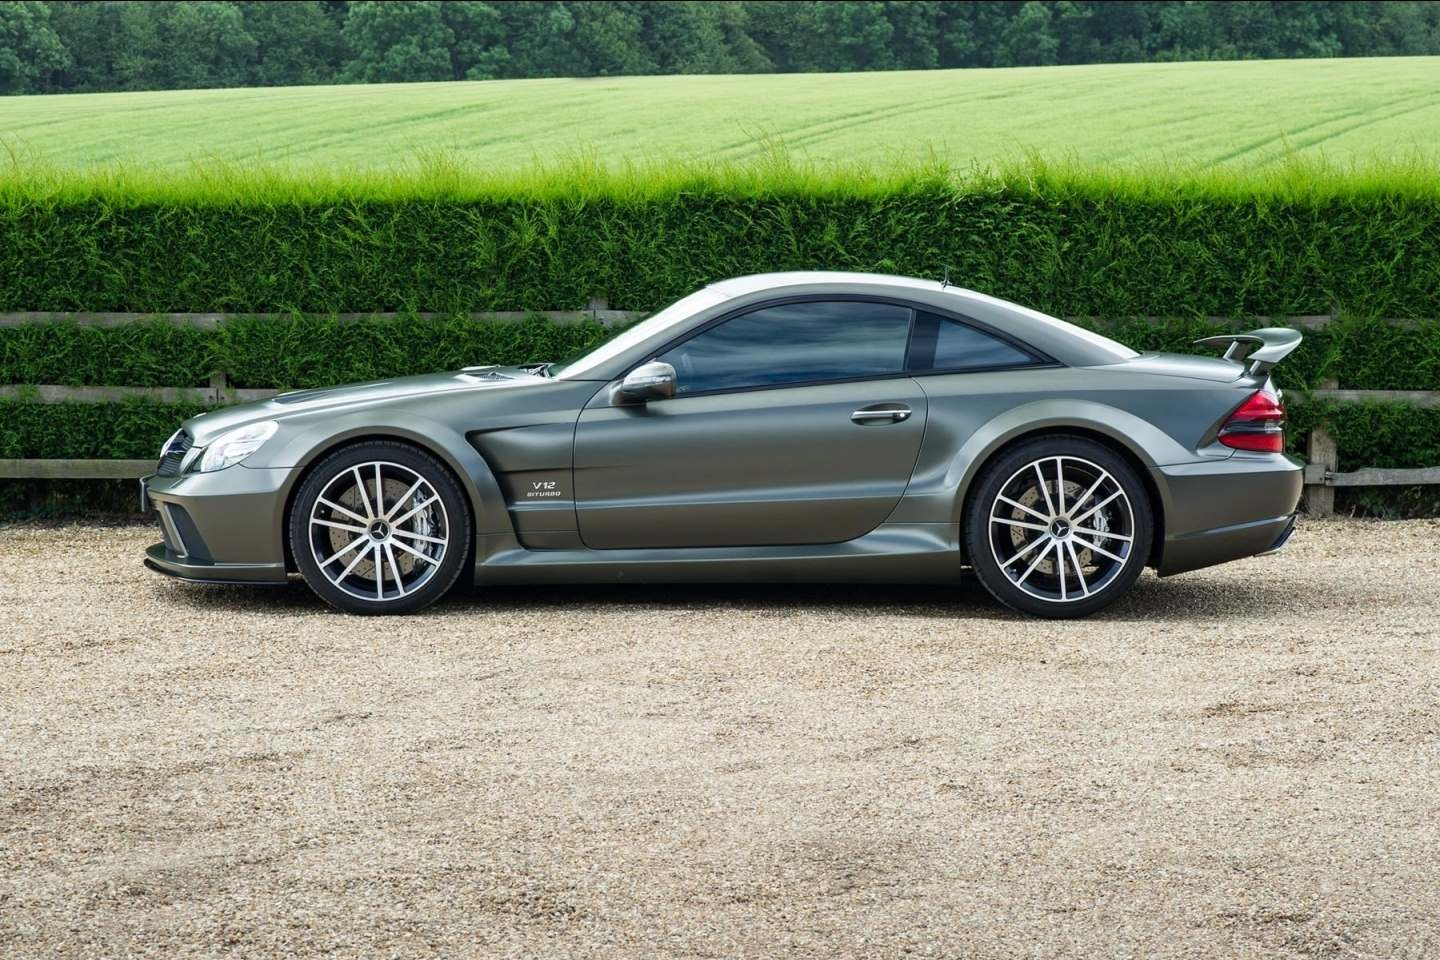 Mercedes benz sl65 amg black series for sale vehicle for Mercedes benz sl65 amg black series price